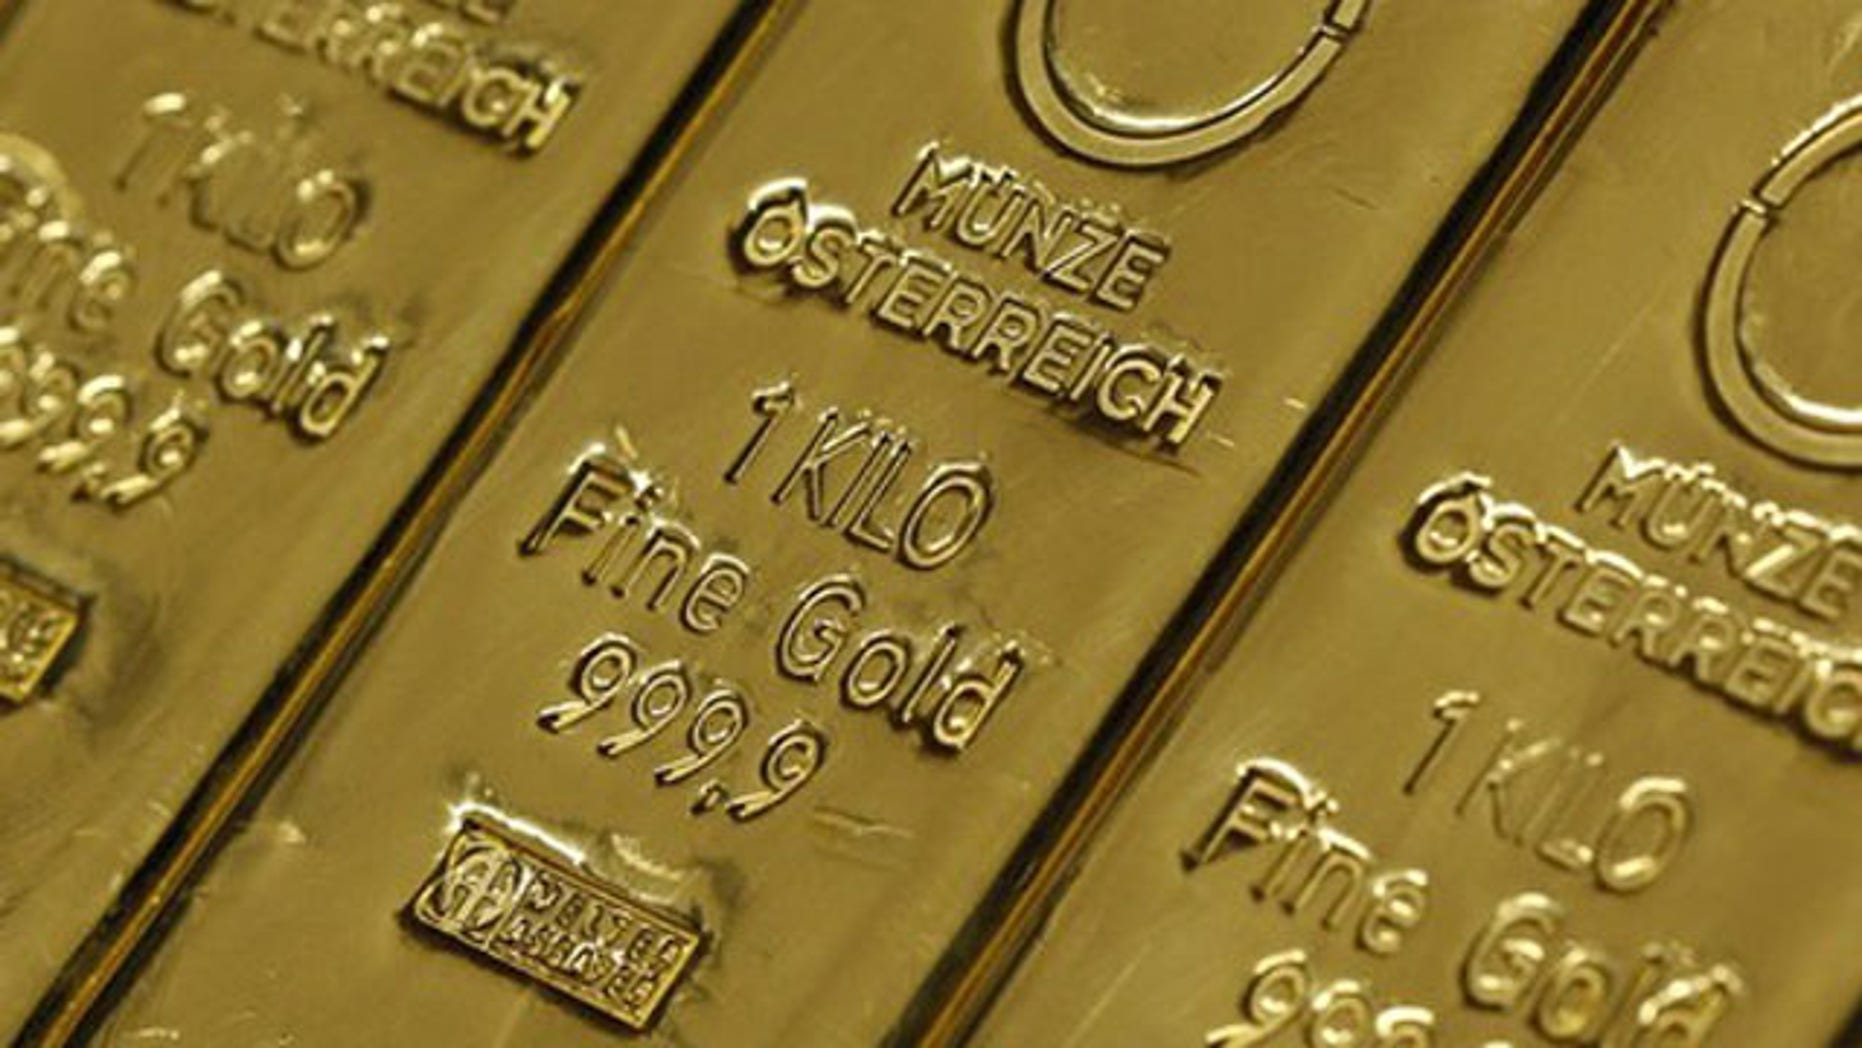 Gold bars are pictured at Muenze Oesterreich (Austrian national mint) in Vienna in this February 17, 2011 file photo.  Spot gold  hit a record high of $1,488.50 an ounce on April 18, 2011, on concern about rising inflation.   REUTERS/Lisi Niesner/ Files  (AUSTRIA - Tags: BUSINESS)